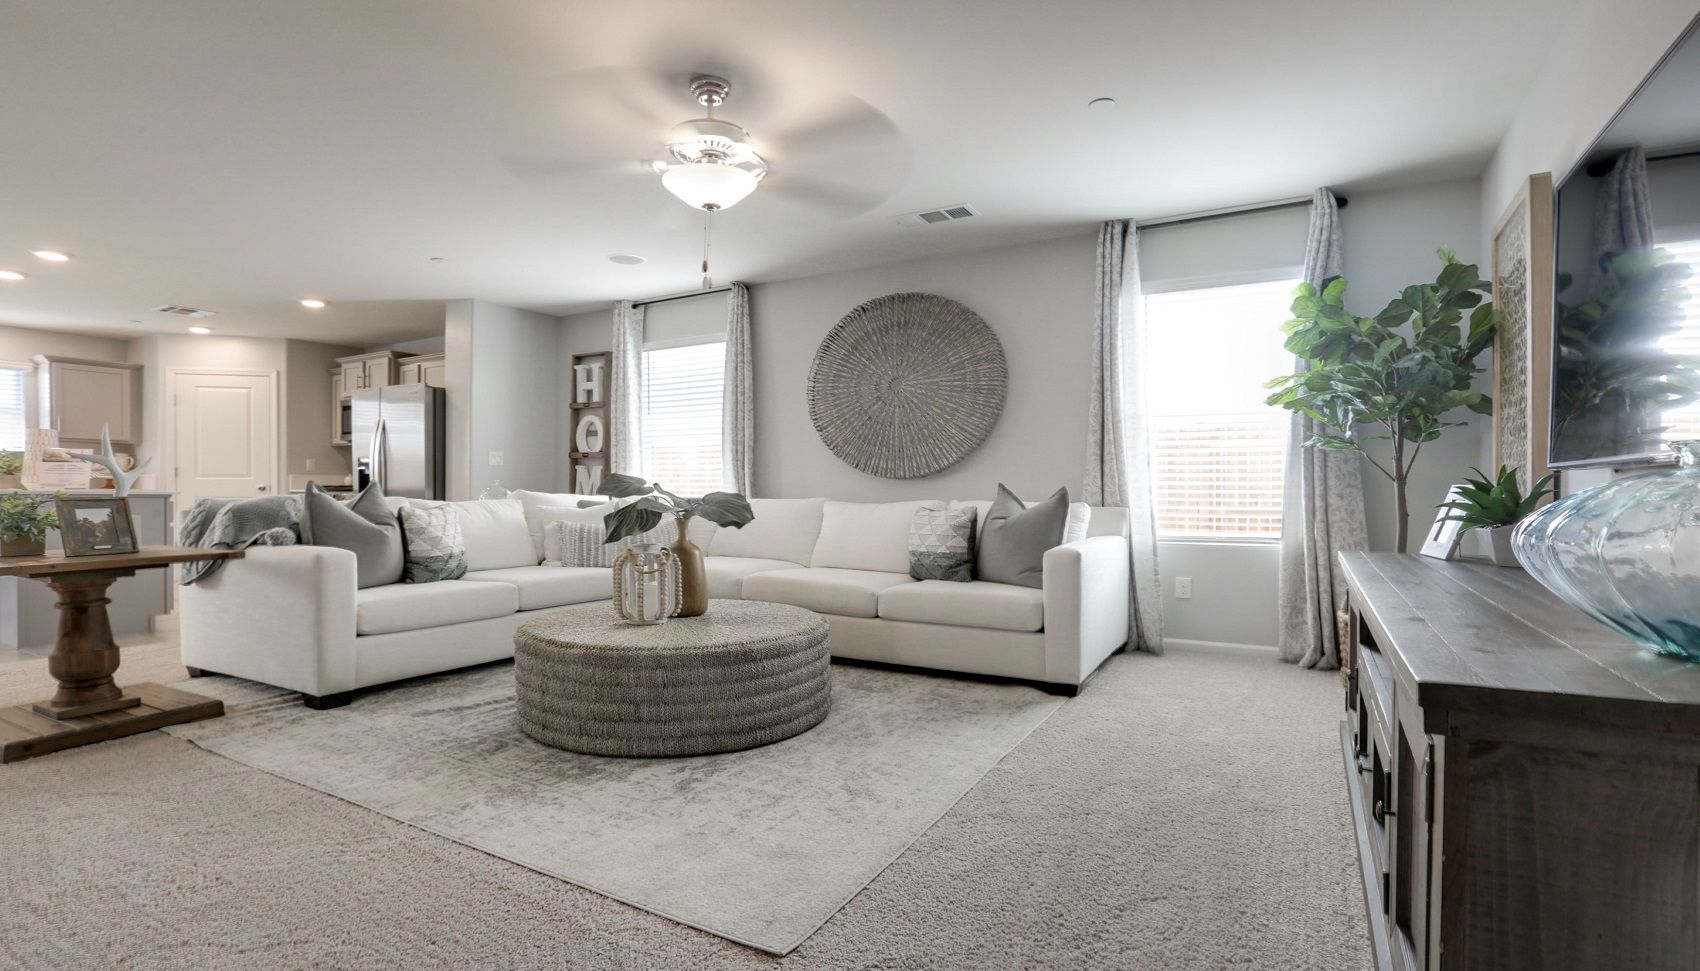 Living Area featured in the Coolidge By D.R. Horton in Merced, CA